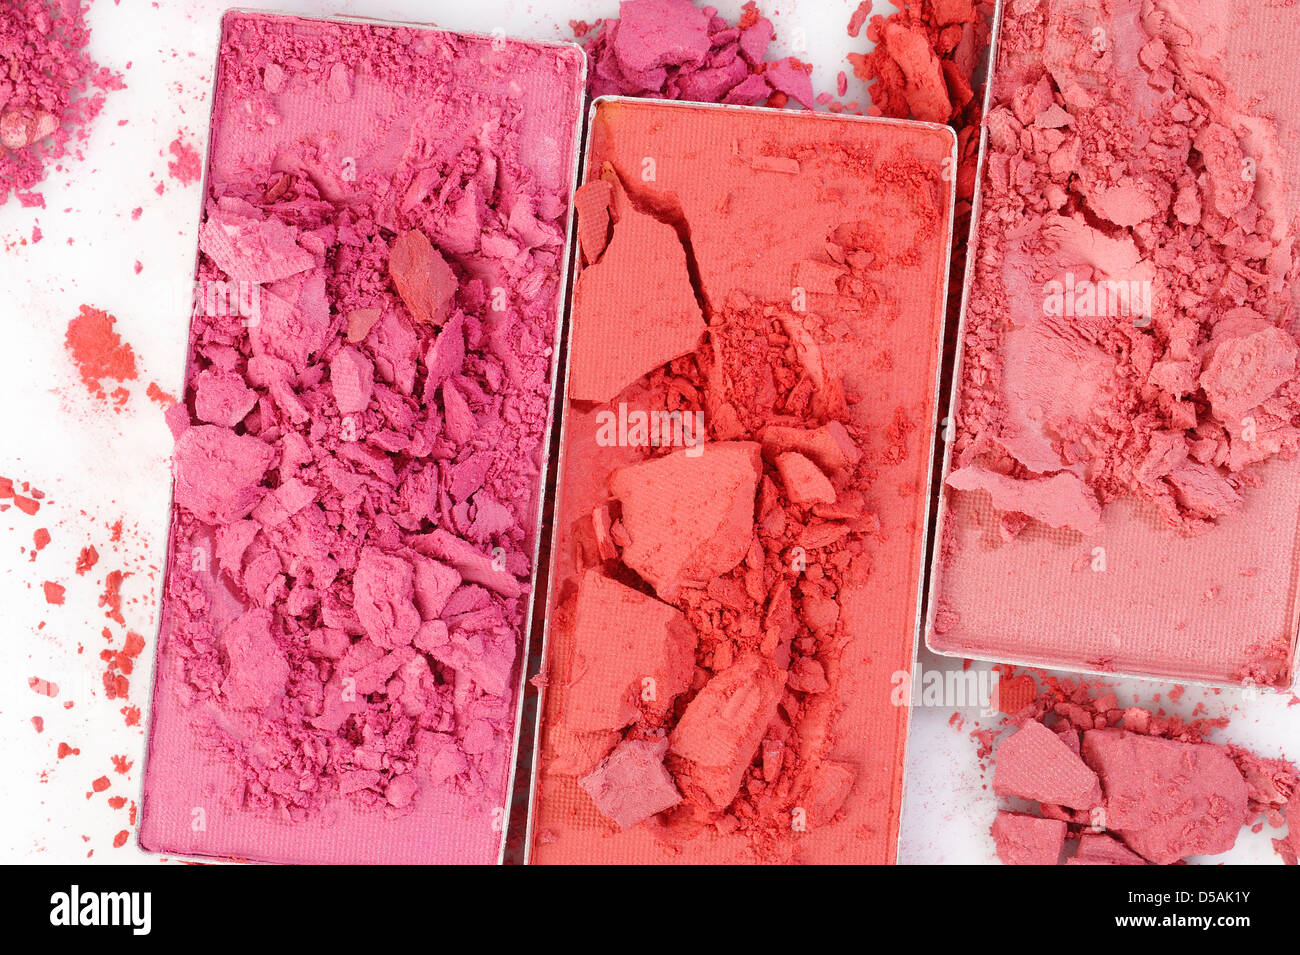 Cosmetic powder brush on white background - Stock Image